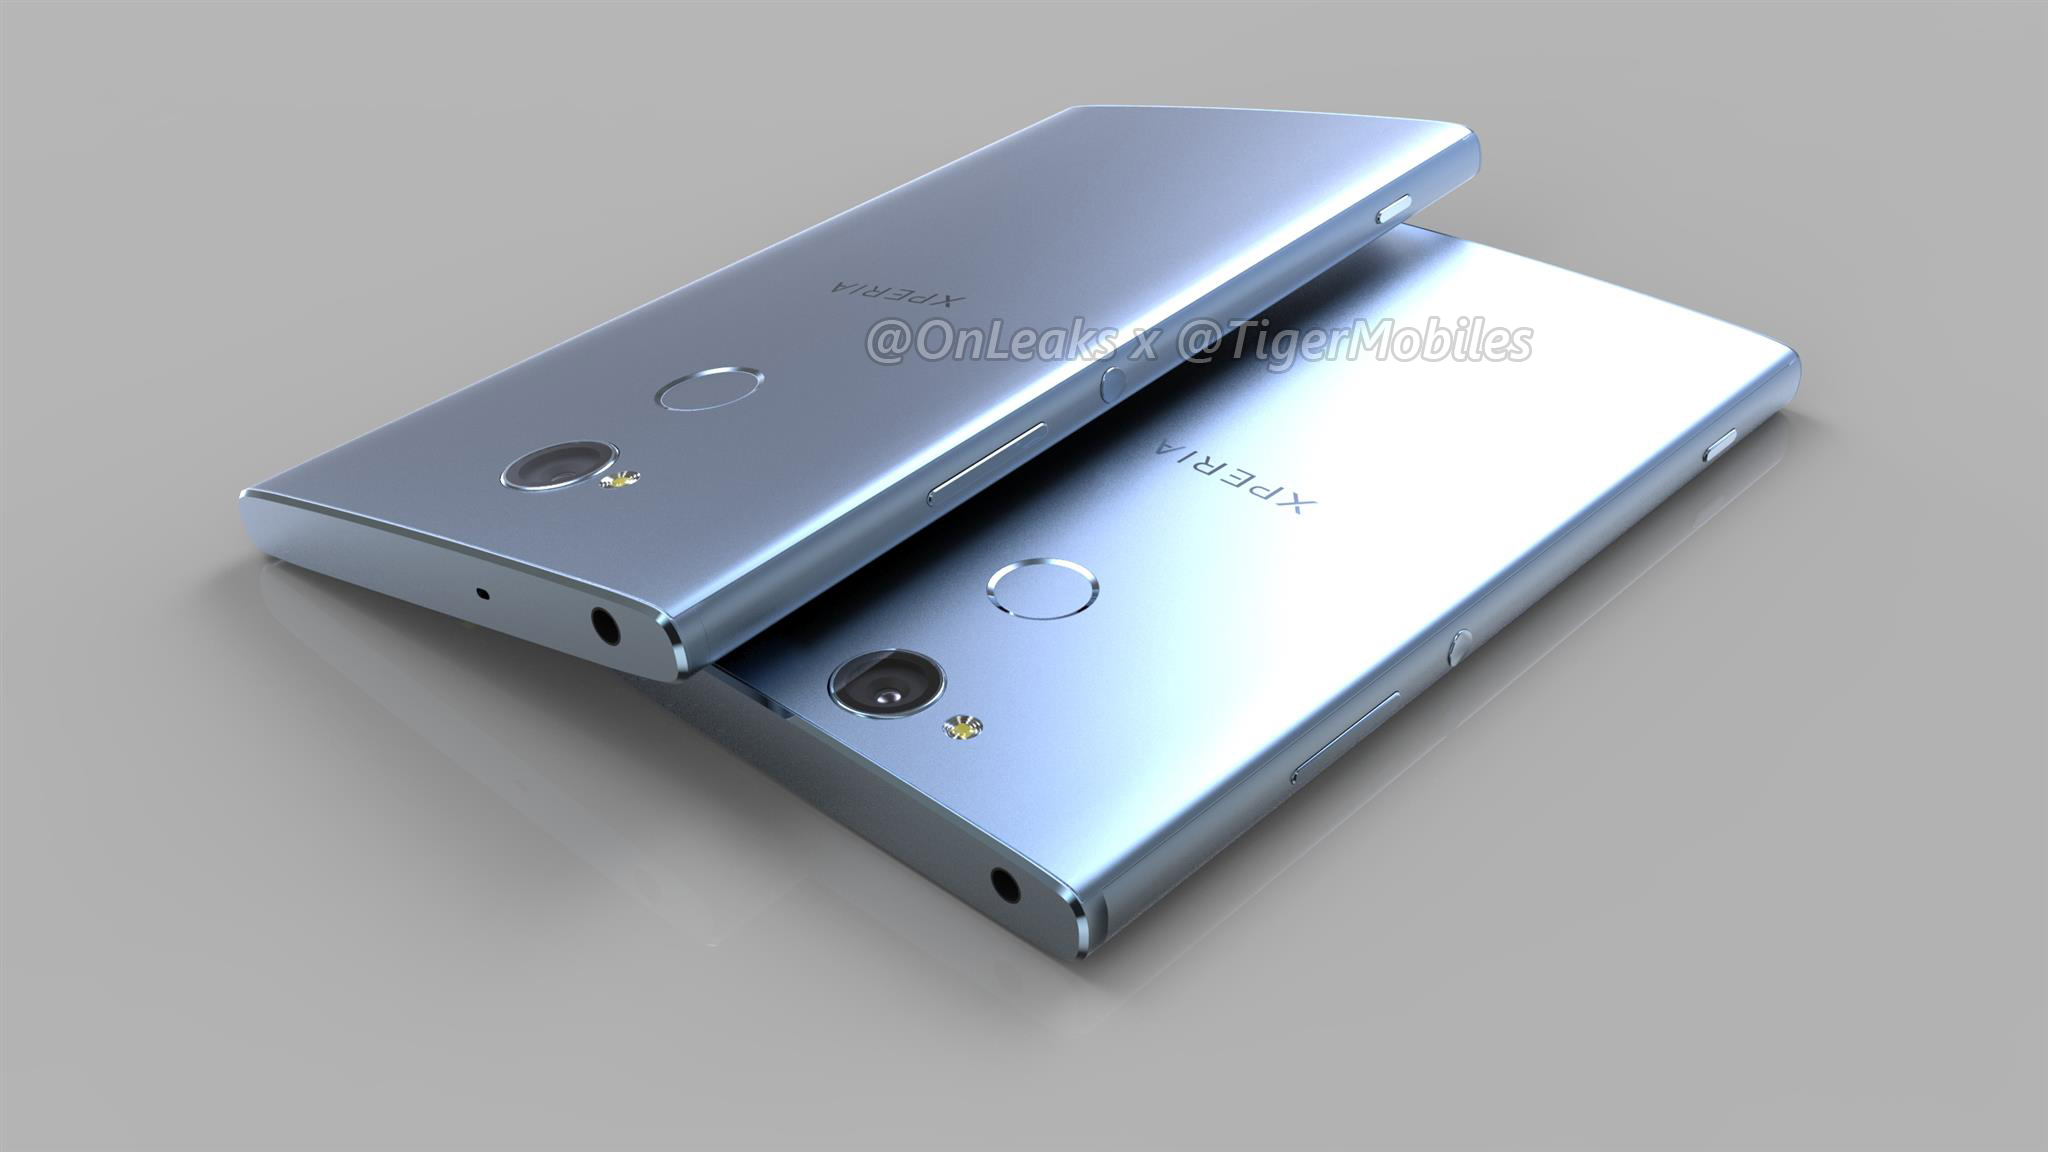 Quality Sony Xperia XA2, XA2 Ultra, and L2 renders confirm outdated designs